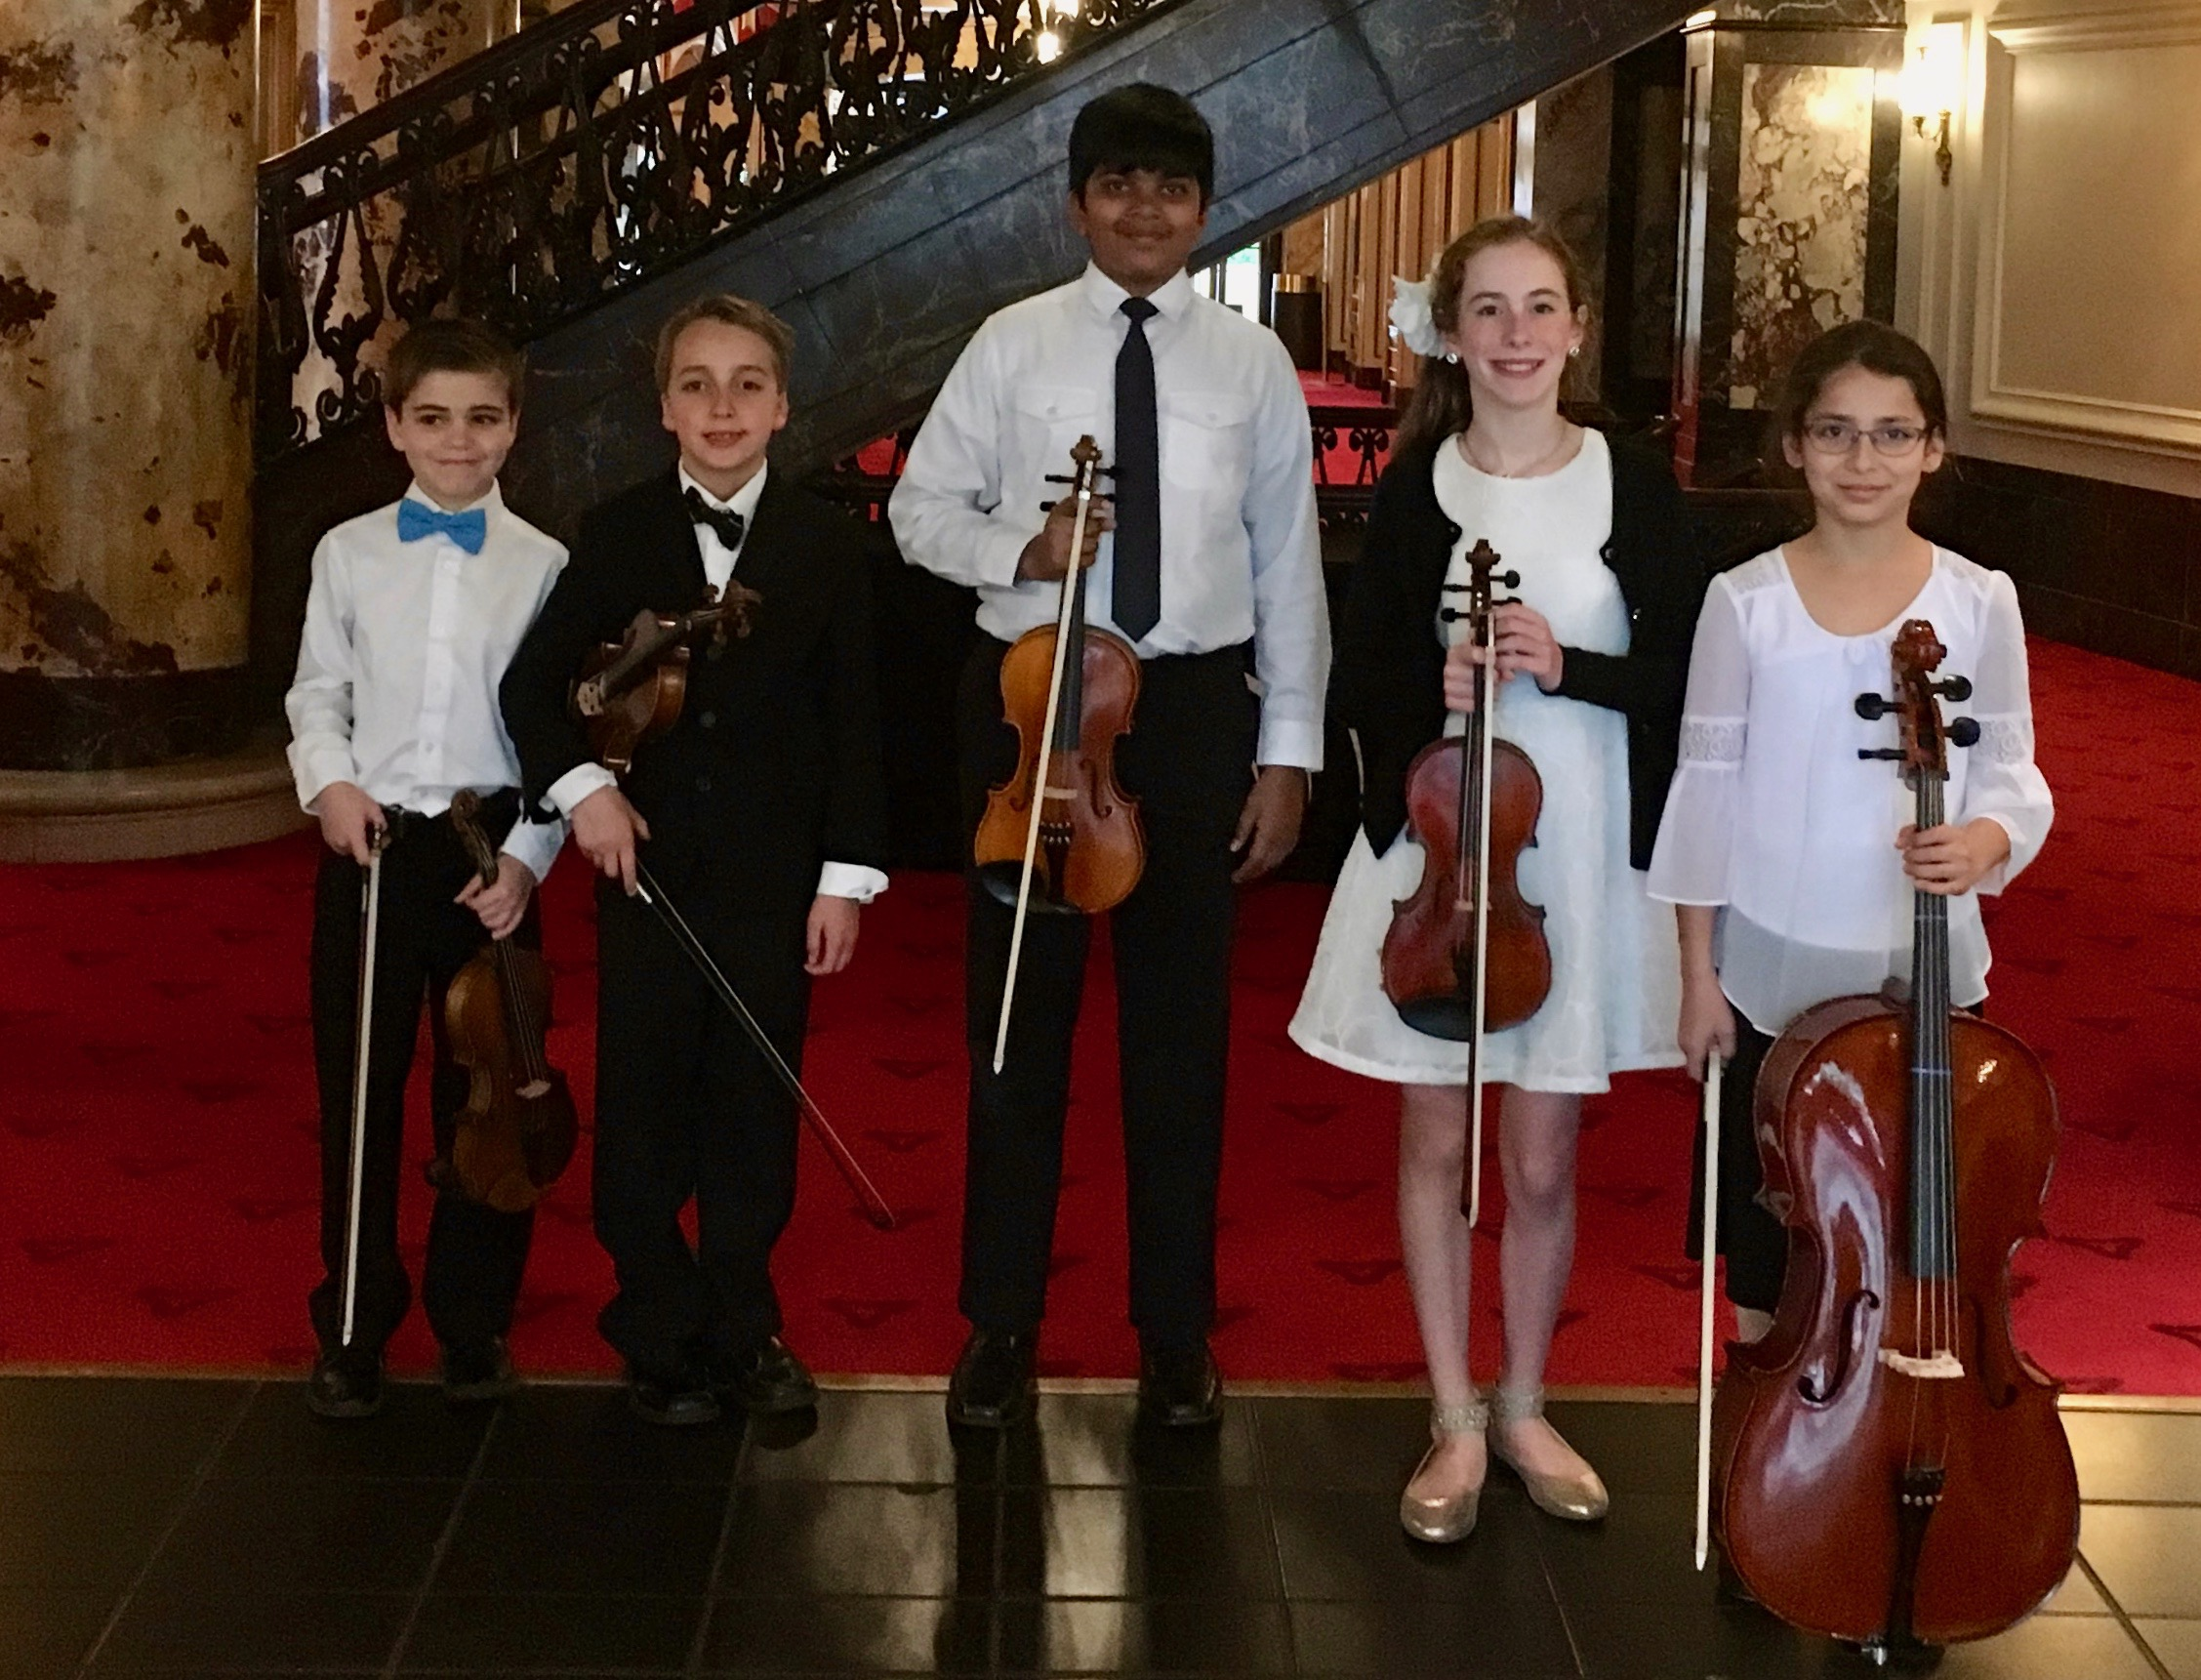 PYSO Pre-Concert - Dates TBAOur youngest groups are invited to perform pre-concert before the Pittsburgh Youth Symphony Orchestra's Heinz Hall Concerts.